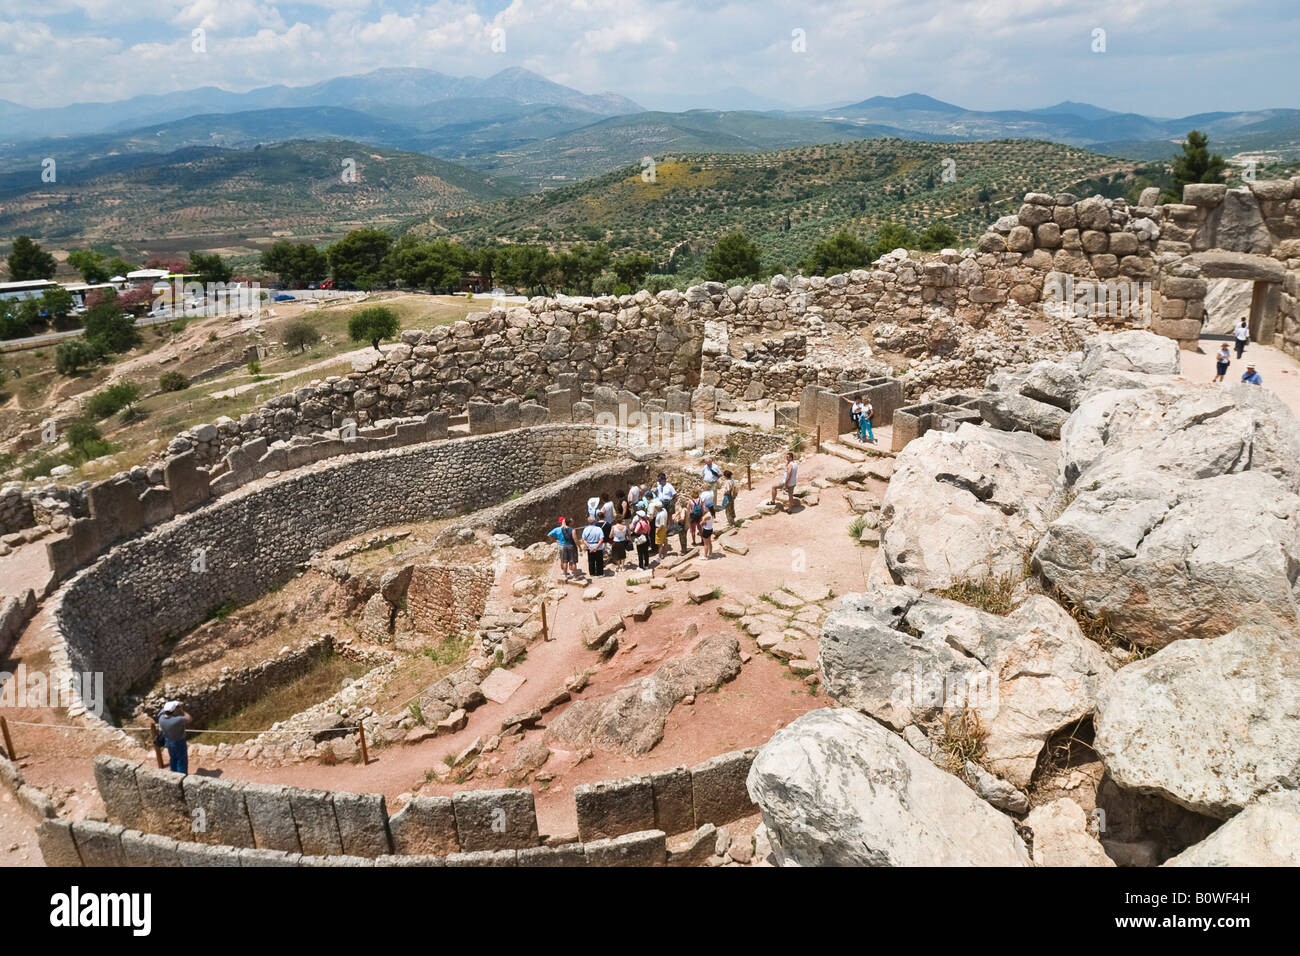 King's Graves ruins, Acropolis, Mycenae archaeological site, Peloponnese, Greece, Europe - Stock Image